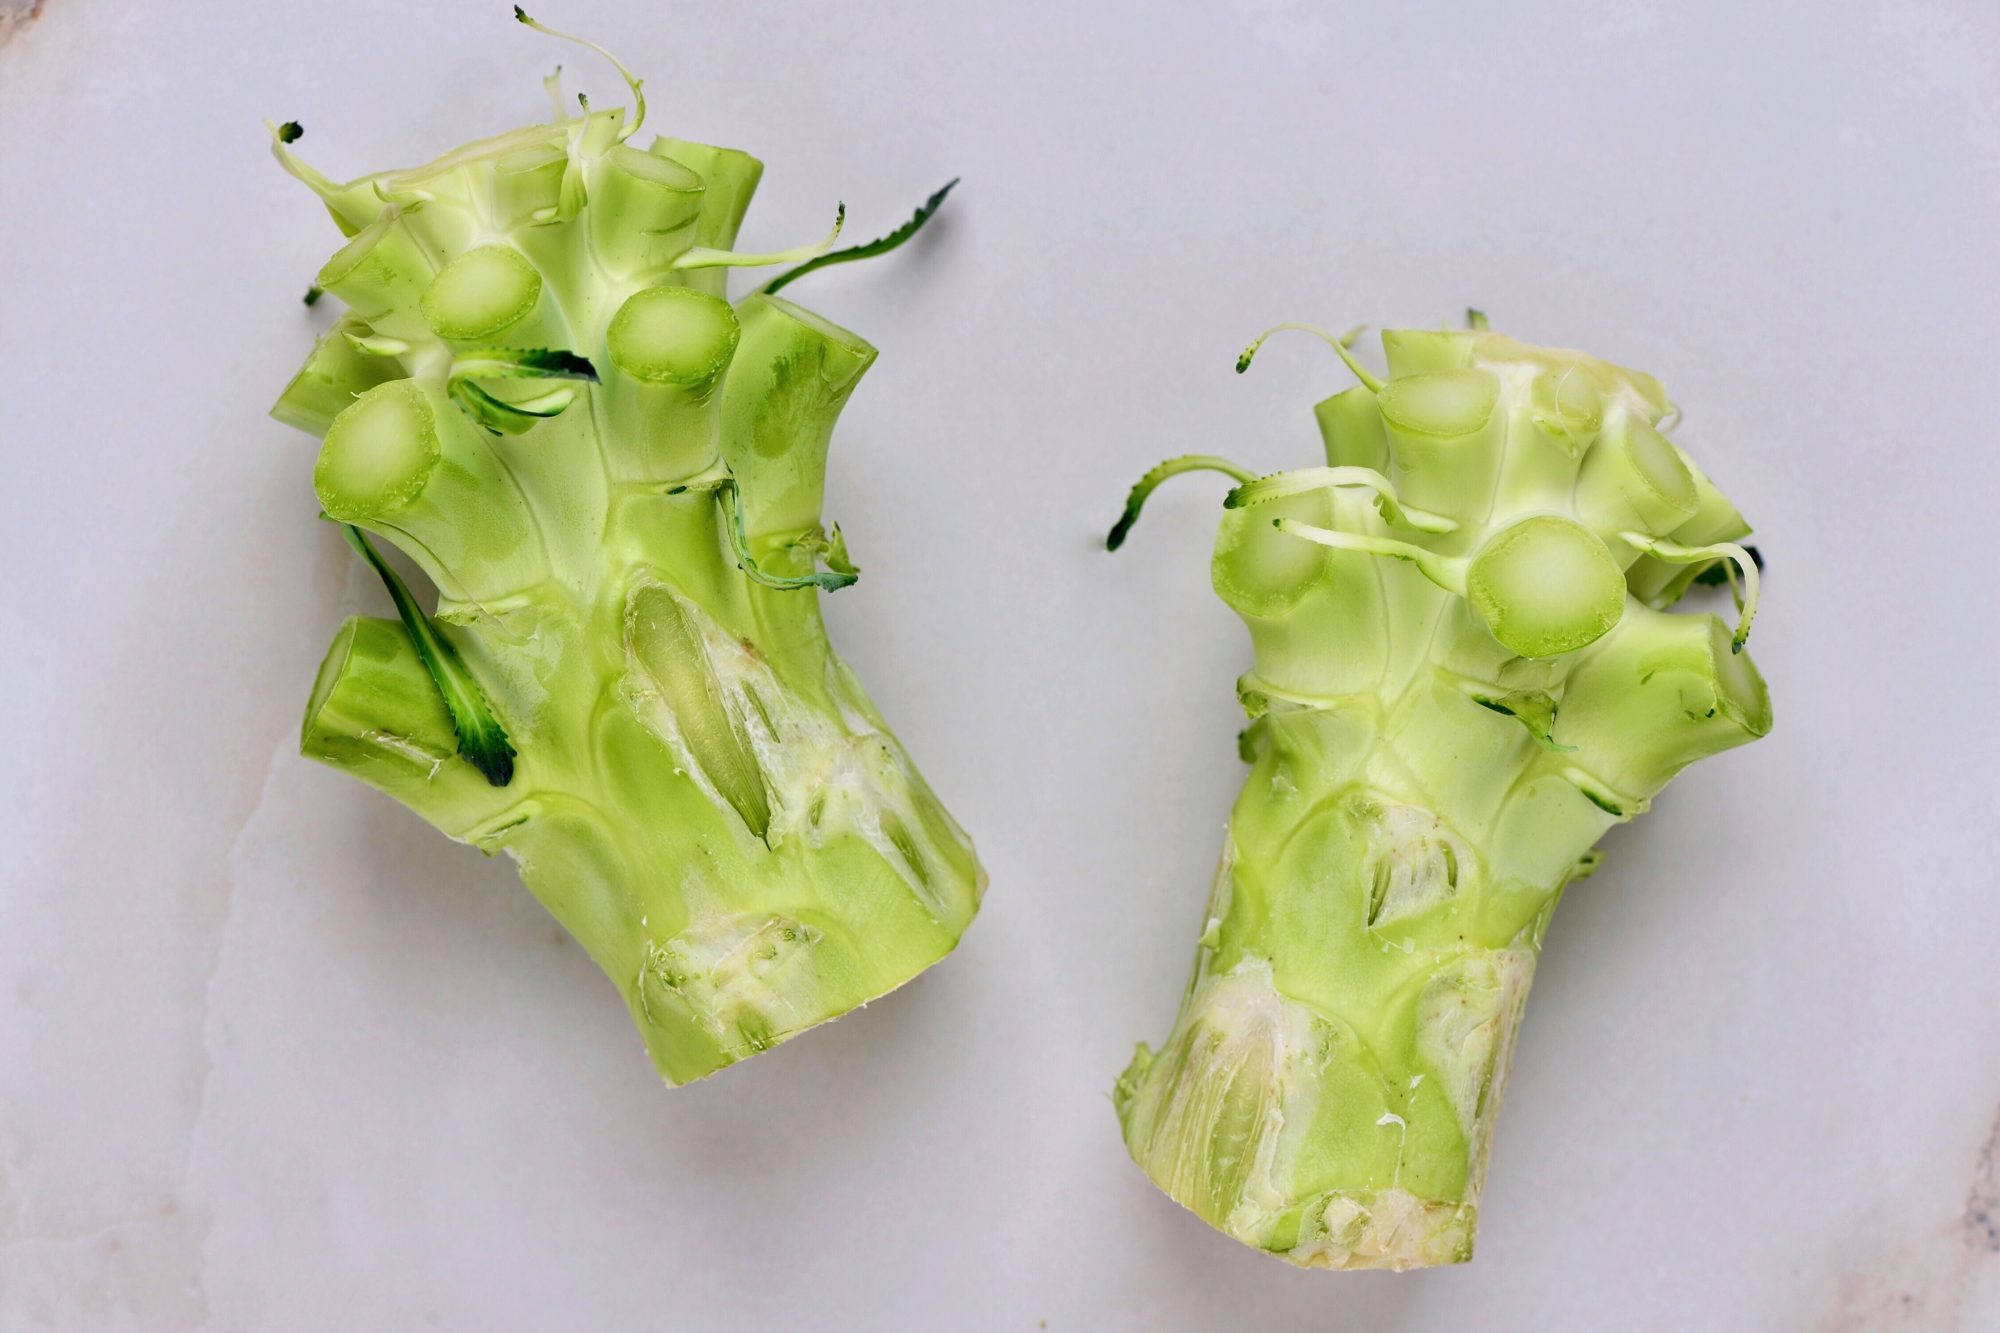 Surprising Foods You Can Eat: Broccoli Stalks